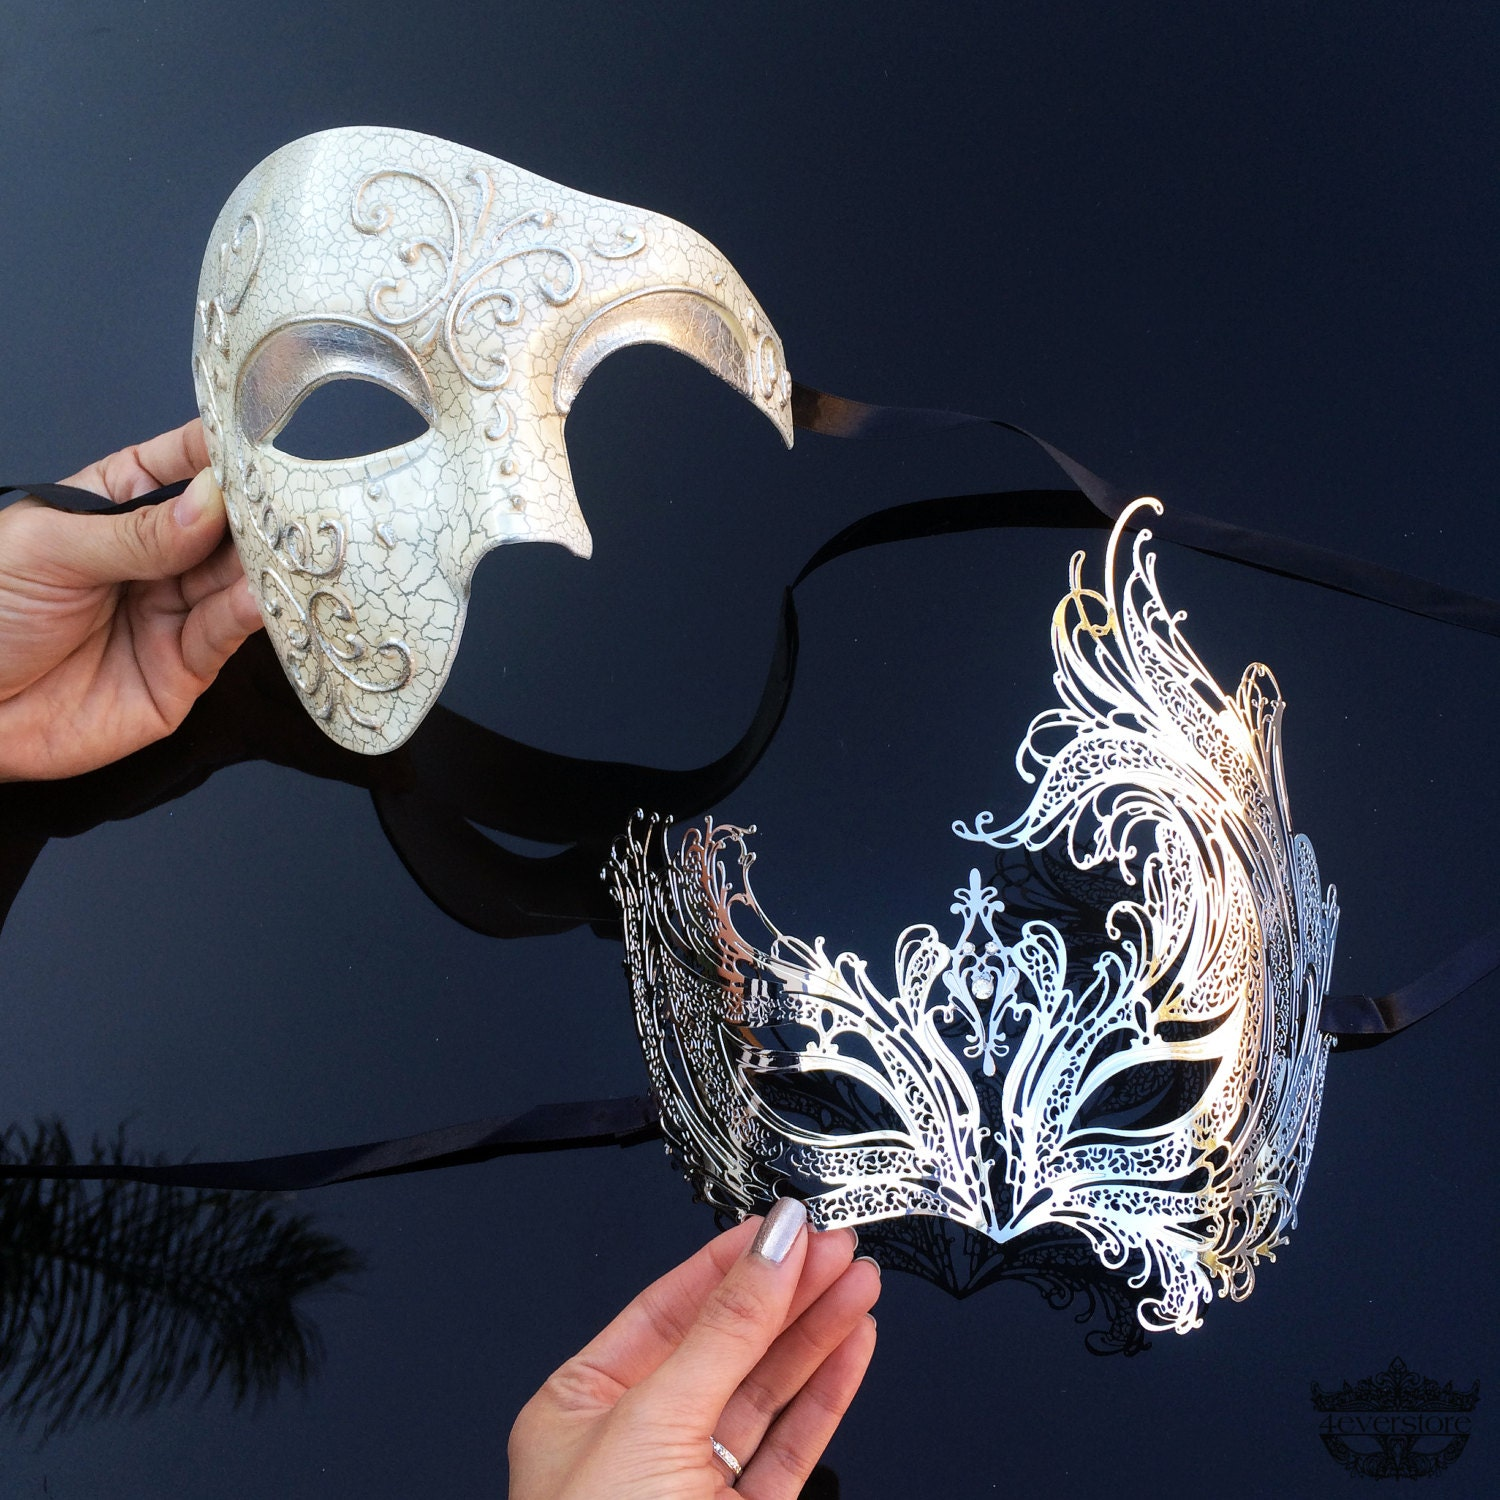 His And Hers Feminine And Masculine Bedrooms That Make A: Couples Masquerade Mask His & Hers Masquerade Mask Roman